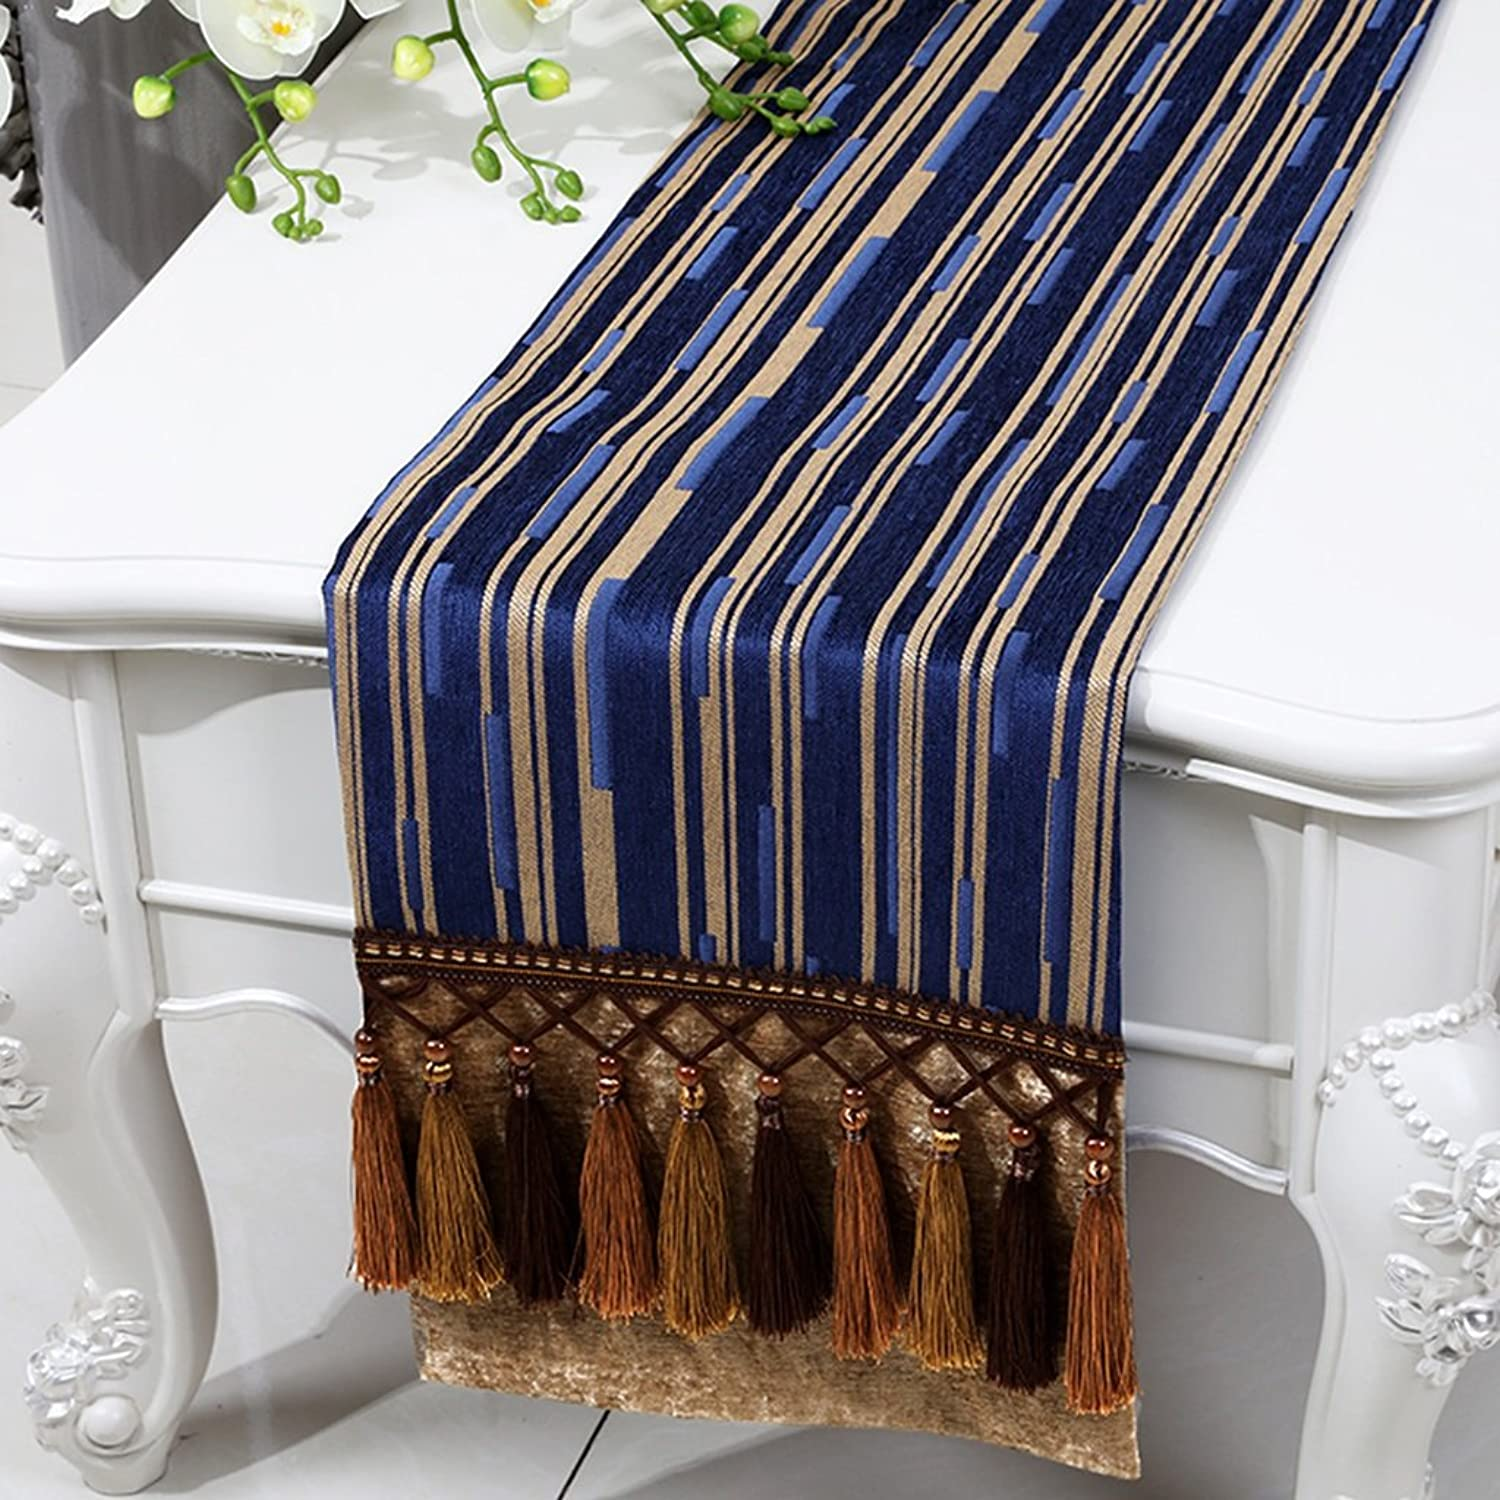 BSNOWFTable Runner Table Runner Stripe Insulation Resistant Dirty With Tassels Tablecloth Table Mat European Style Classical Simple Modern ( color   Royal bluee , Size   33300cm )